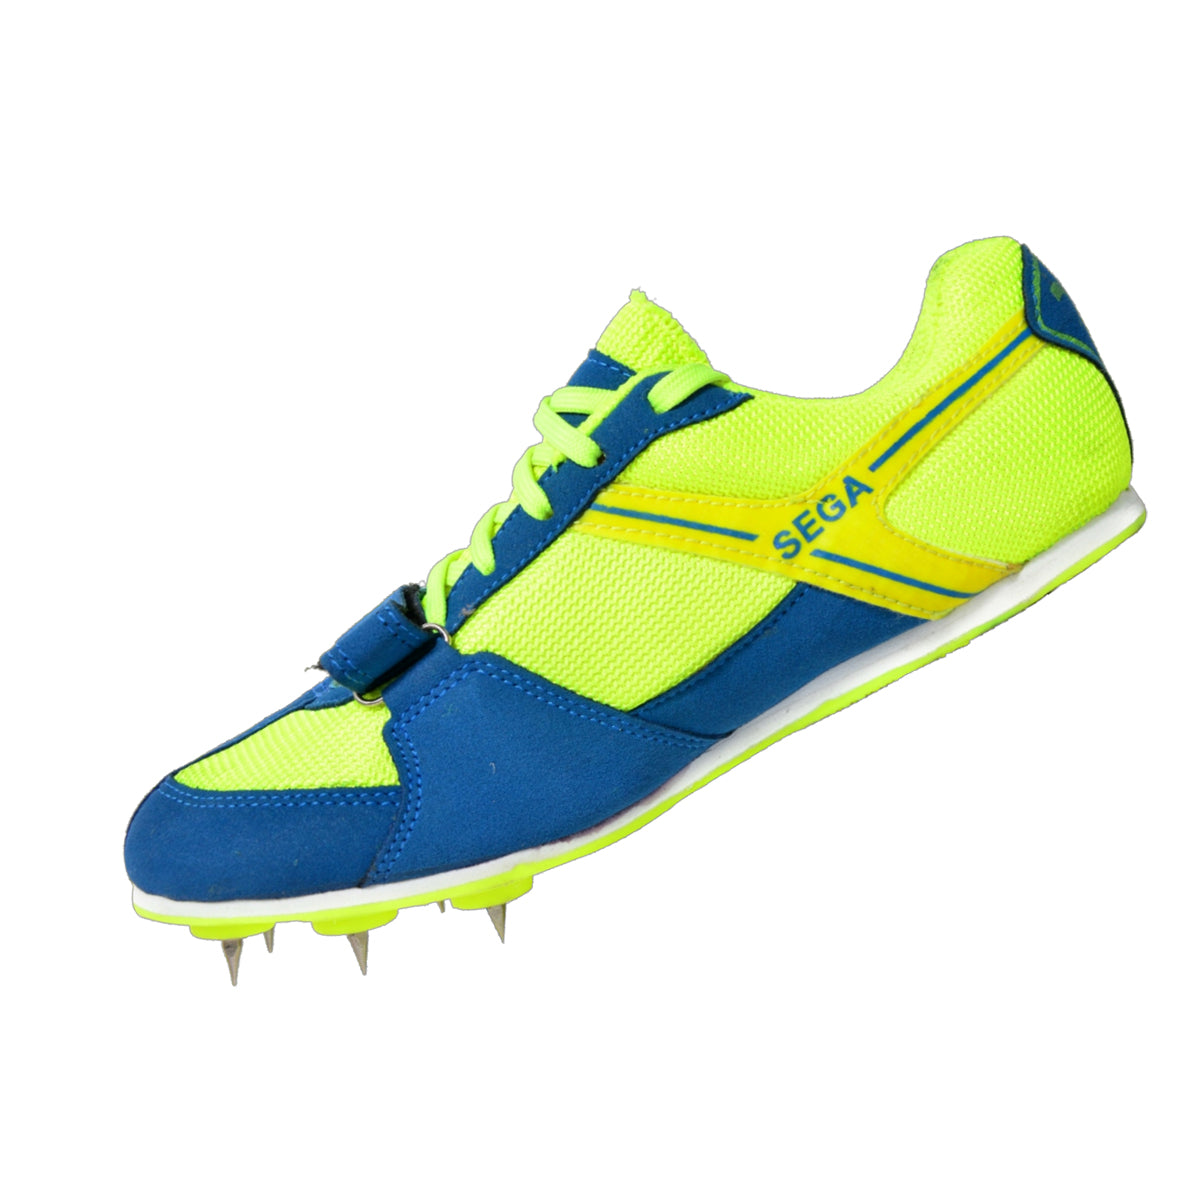 Sega Boon Spikes Running Athletic Shoes